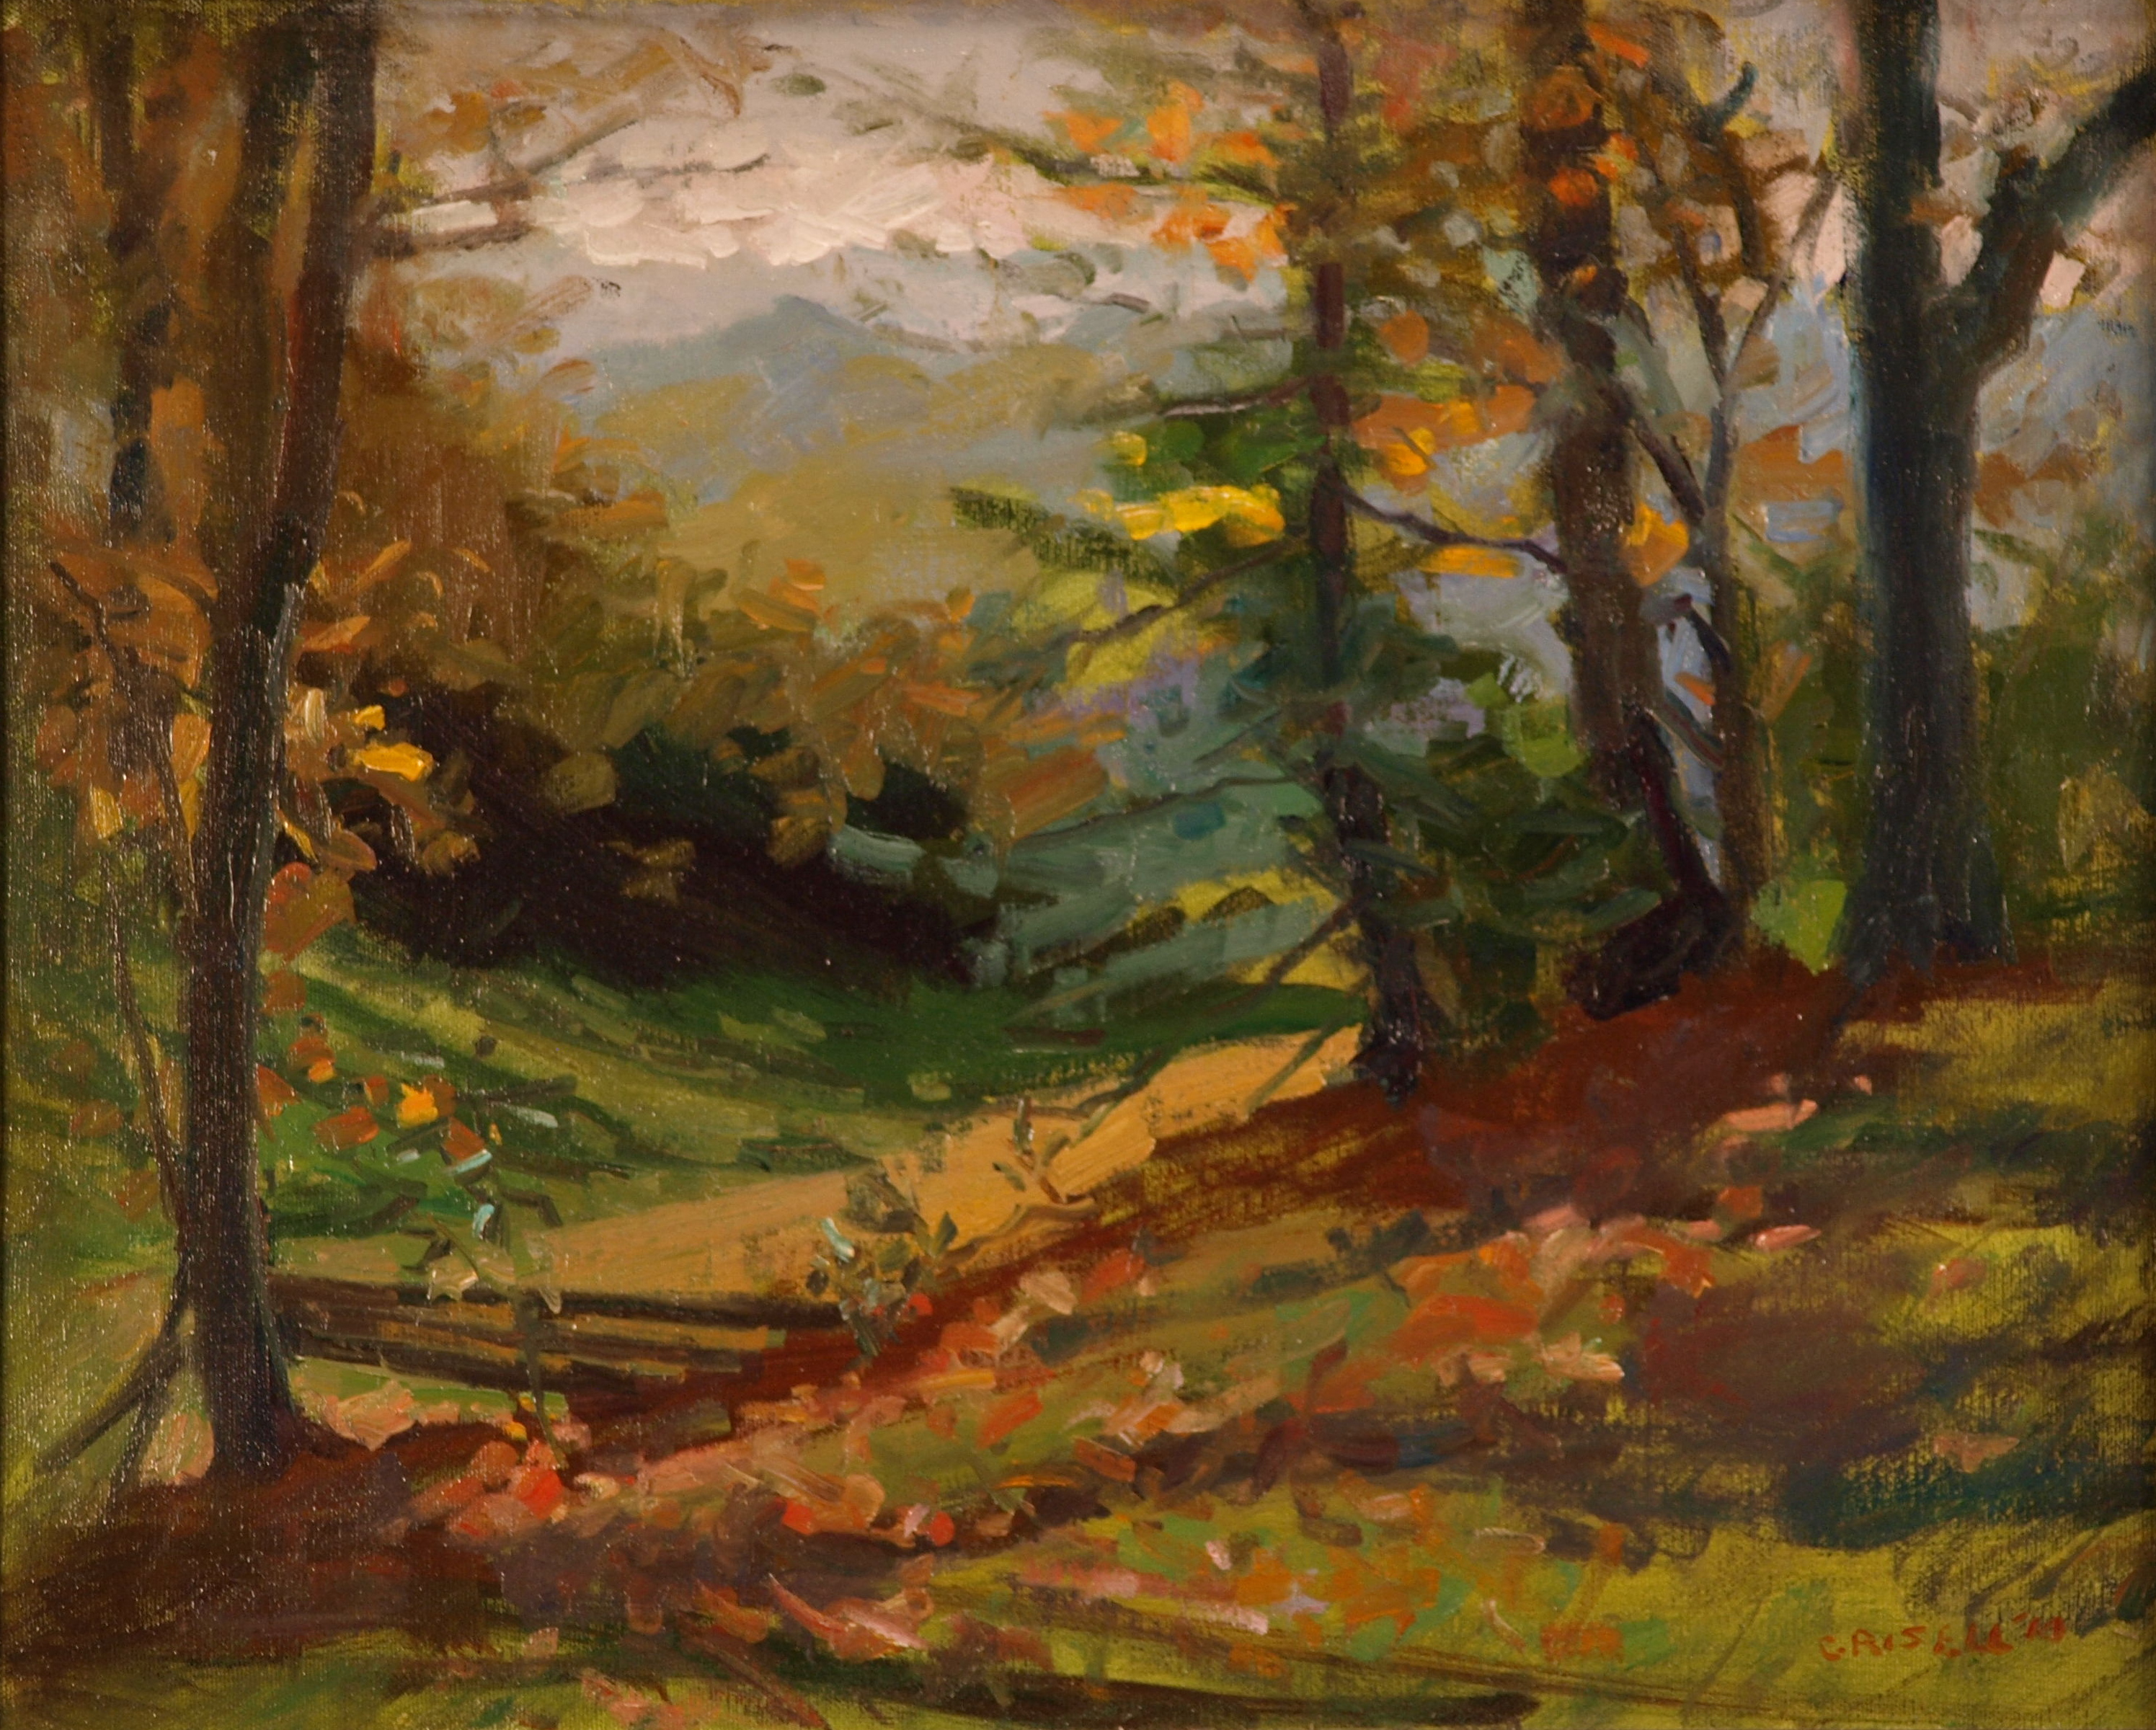 Appalachian Landscape, Oil on Canvas, 16 x 20 Inches, by Susan Grisell, $450